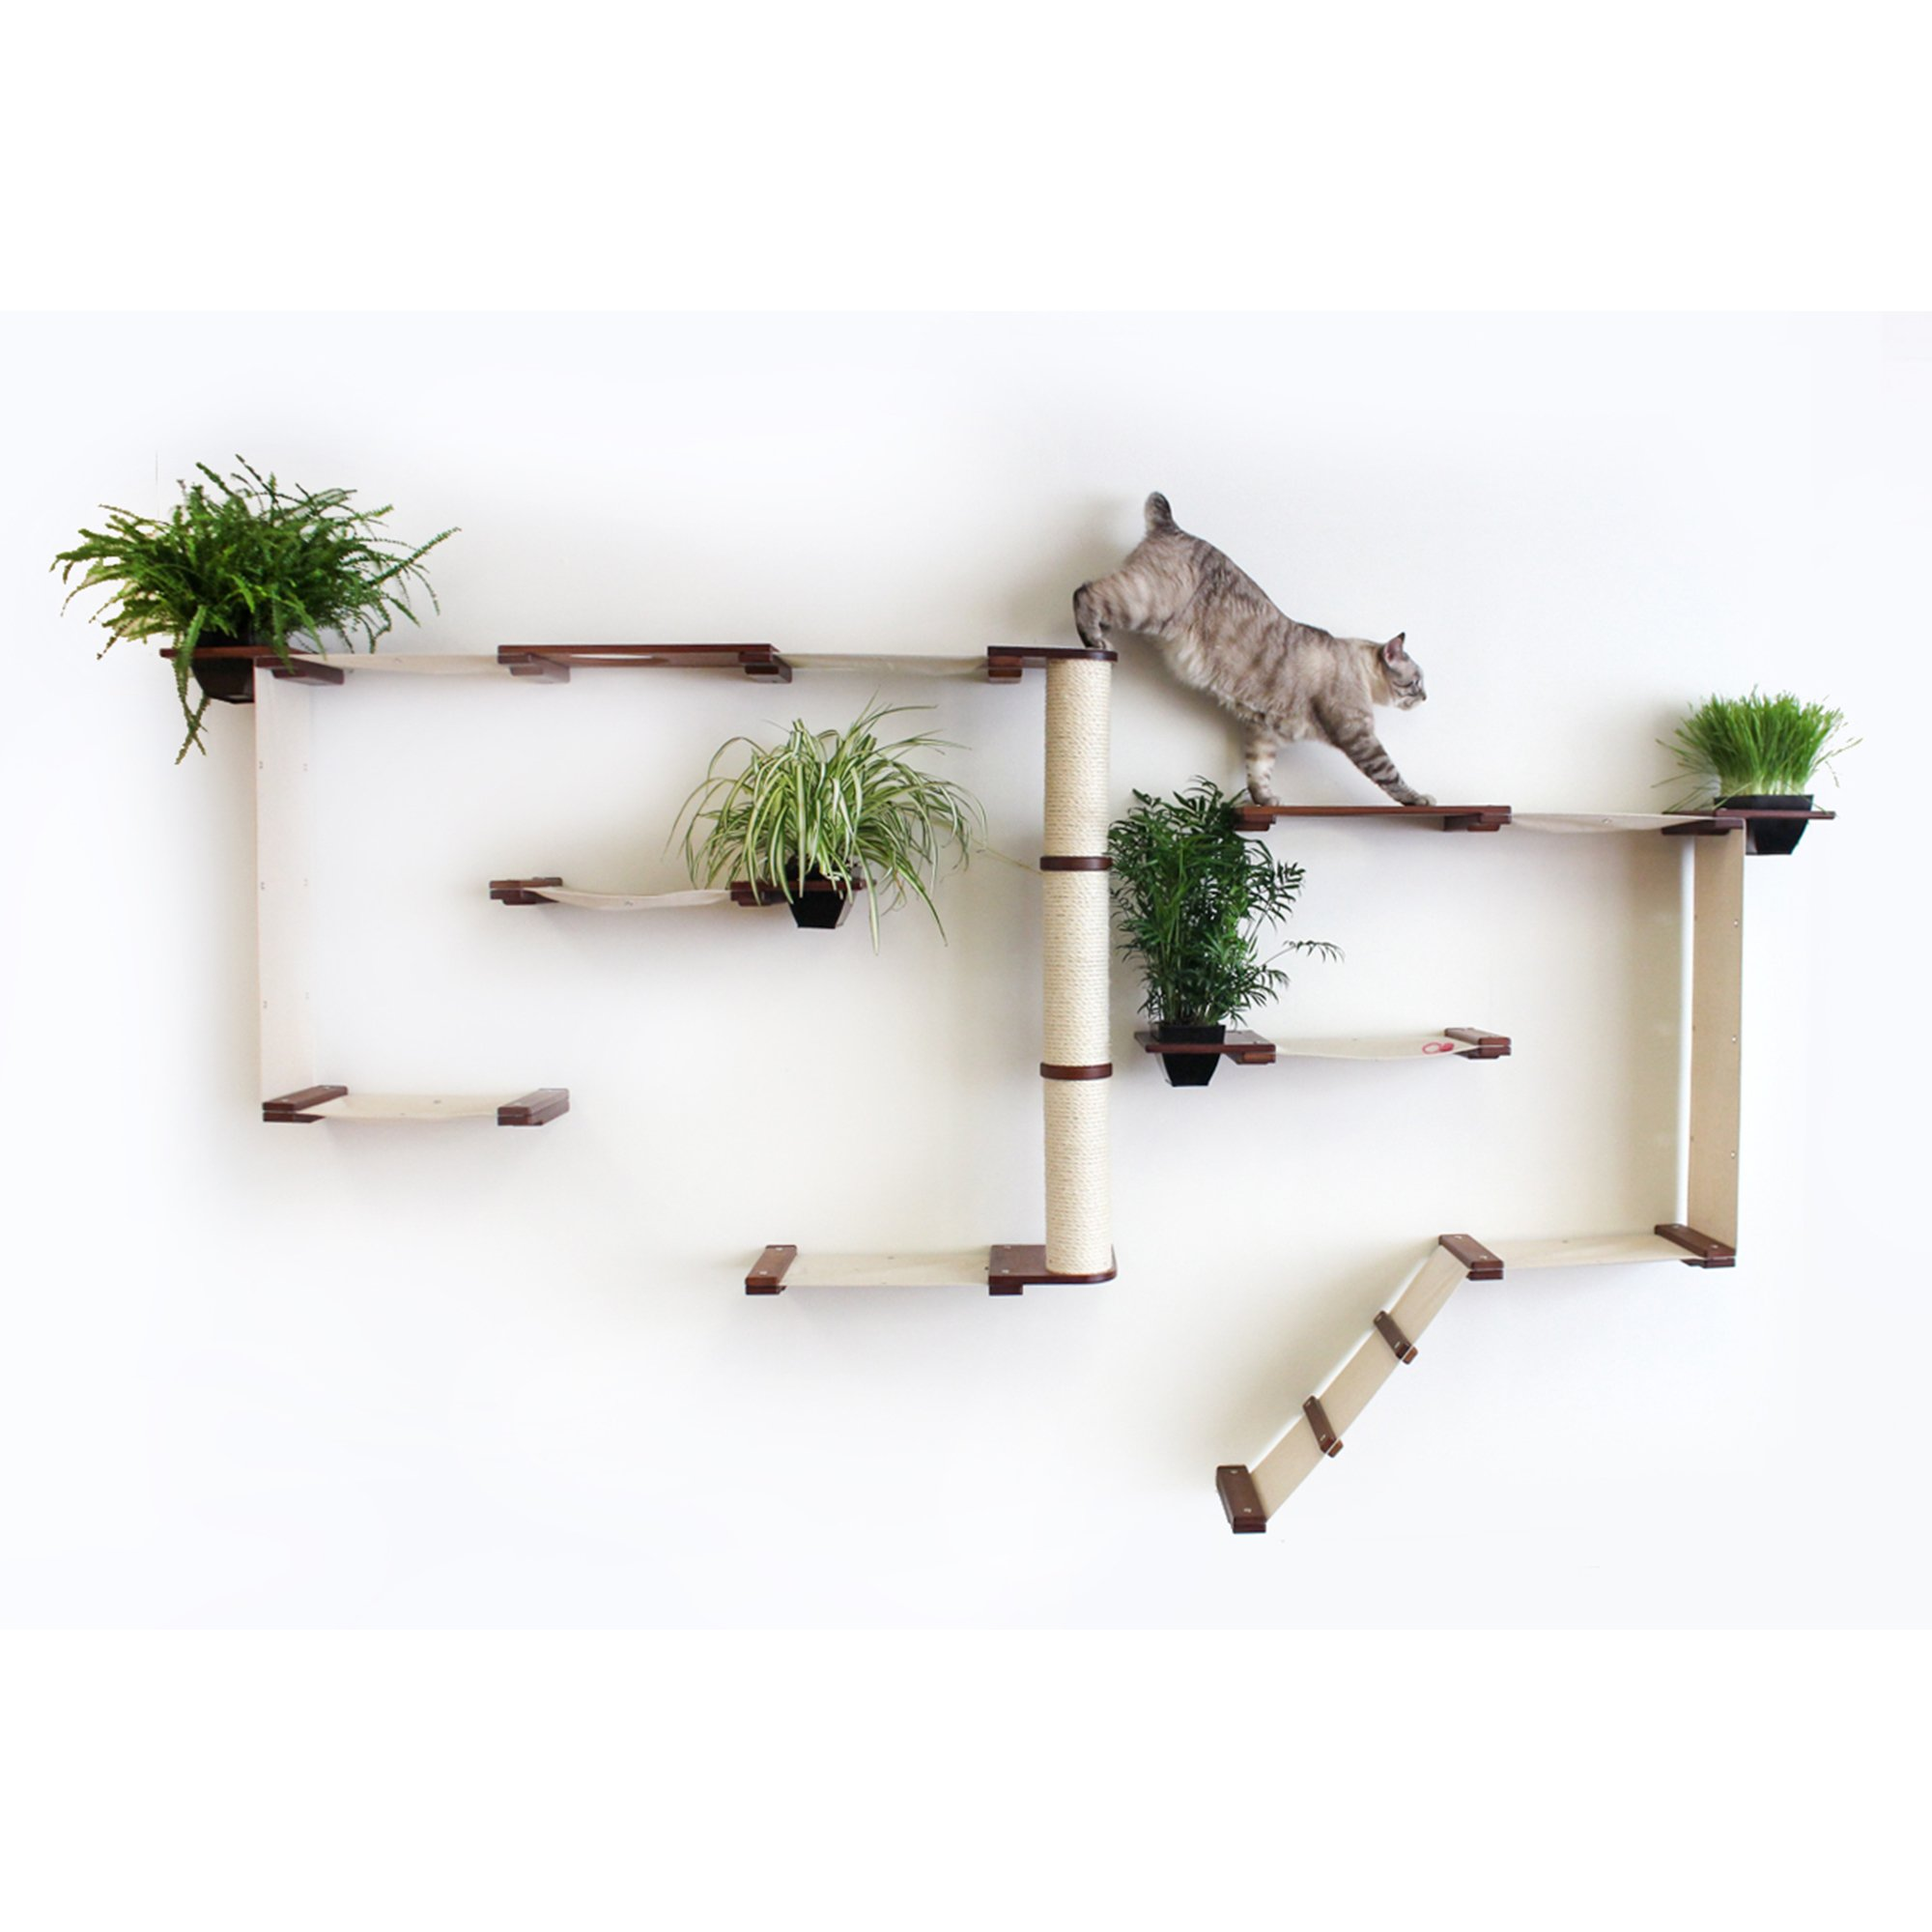 Catastrophicreations The Cat Mod Gardens Complex With Planters For Cats In English Chestnut, 109 In W X 63 In H, 58 Lb